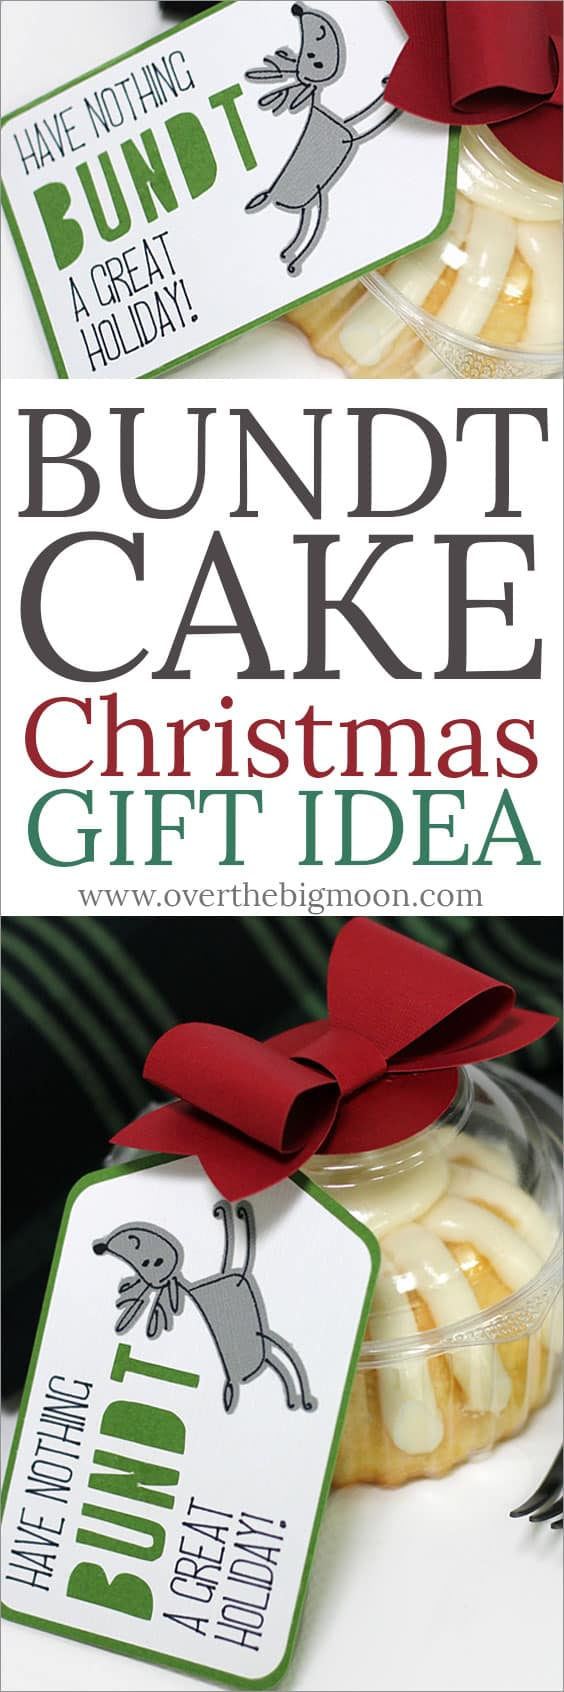 Bundt Cake Christmas Gift Idea - this is so simple and cute! From www.overthebigmoon.com